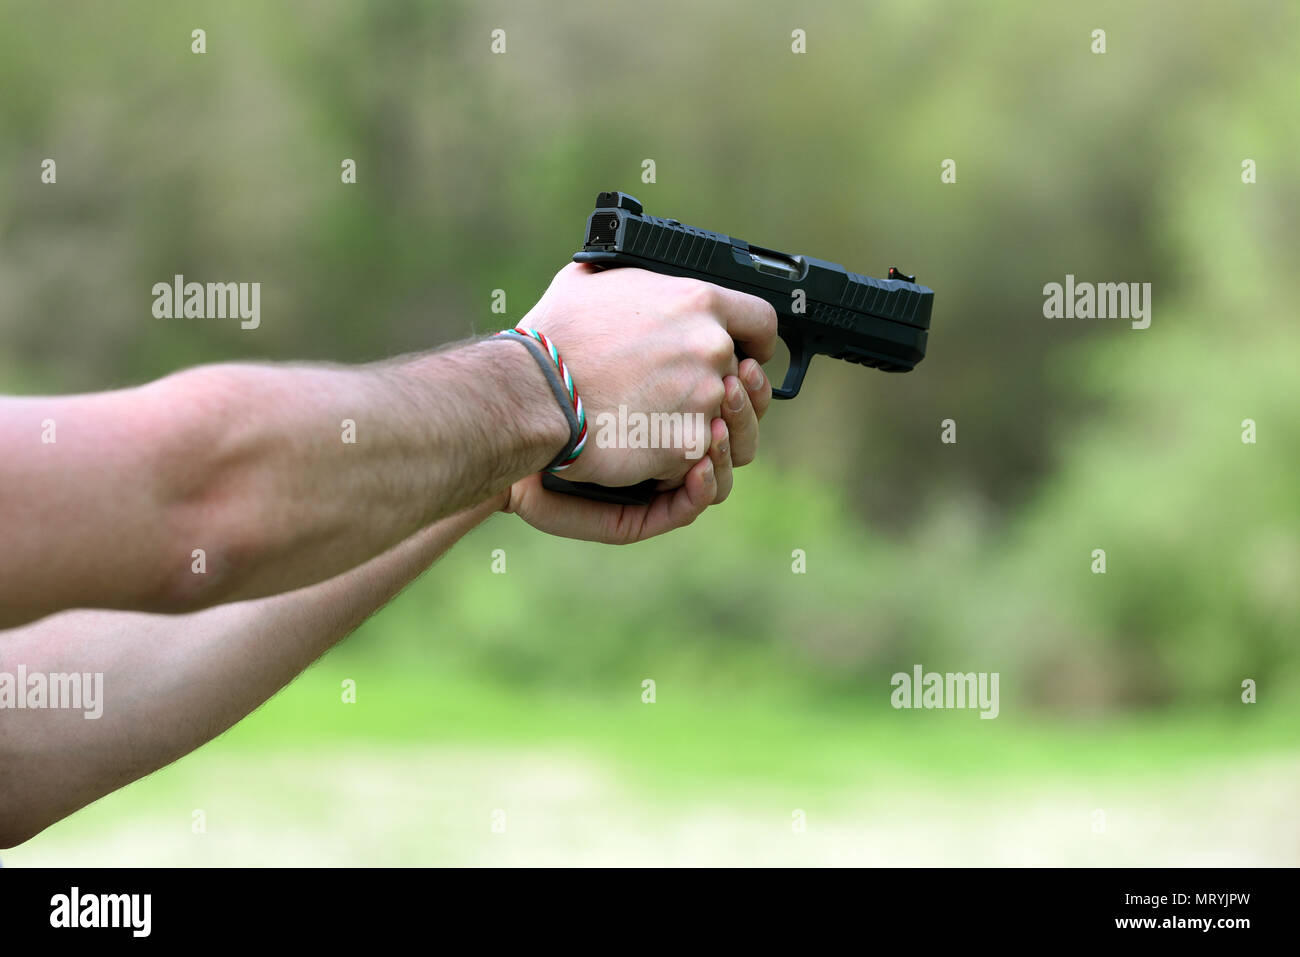 Man bare hands in close-up shooting with black handgun standing outdoors, viewed from the side - Stock Image